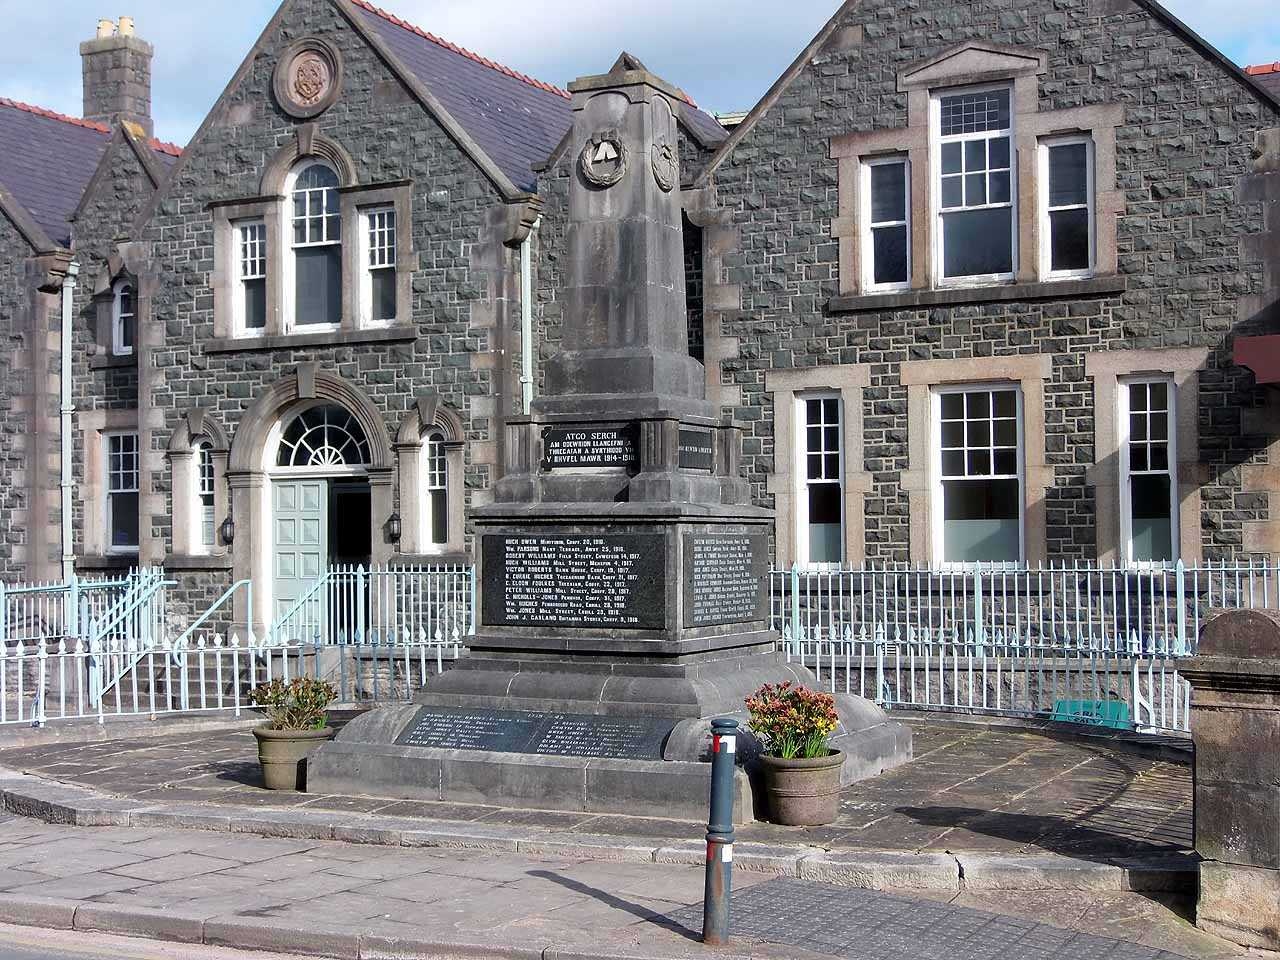 Anglesey, Llangefni War Memorial - front and side view